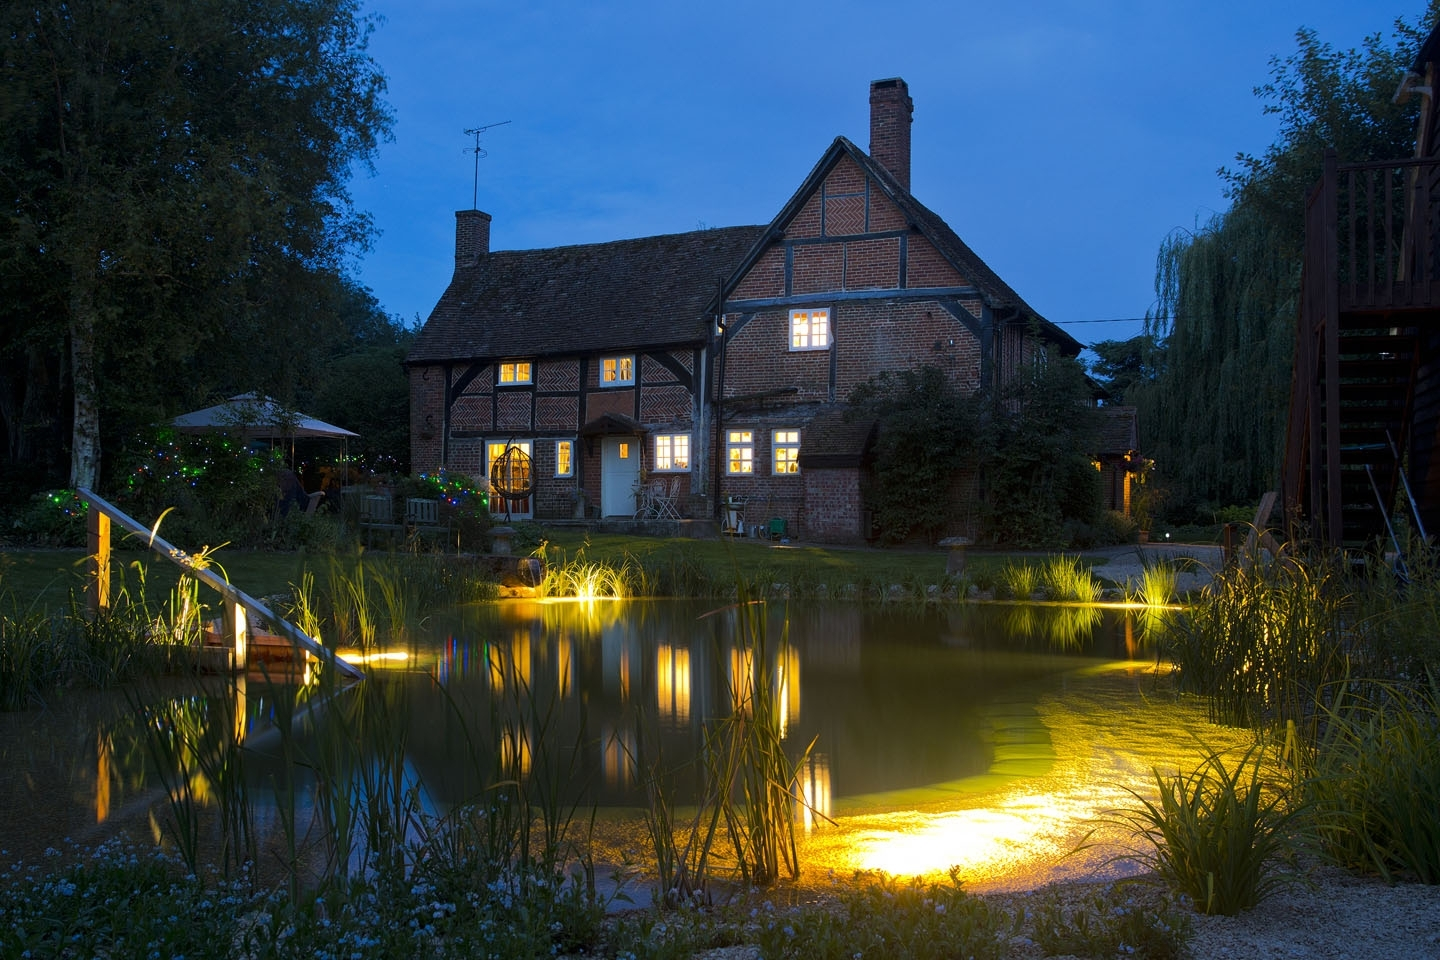 Gartenart | Portfolio | Mandy and Nigel Keene, Hampshire